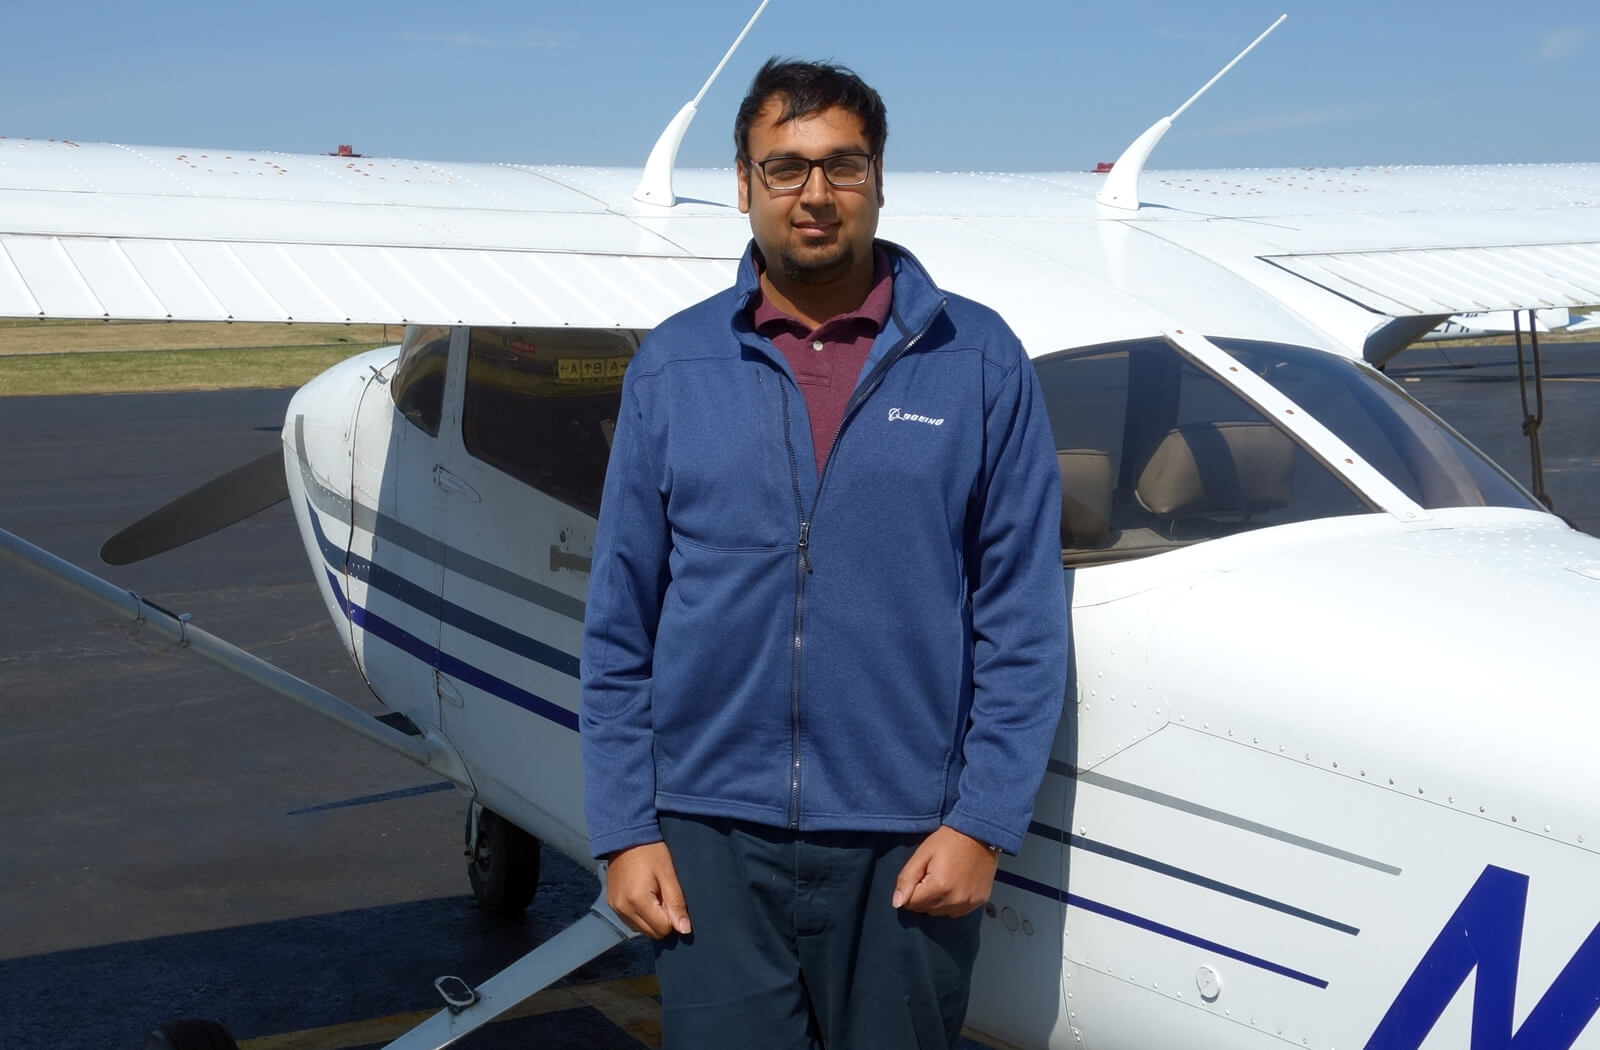 Saad Sheikh, CFI, Princeton Flying School